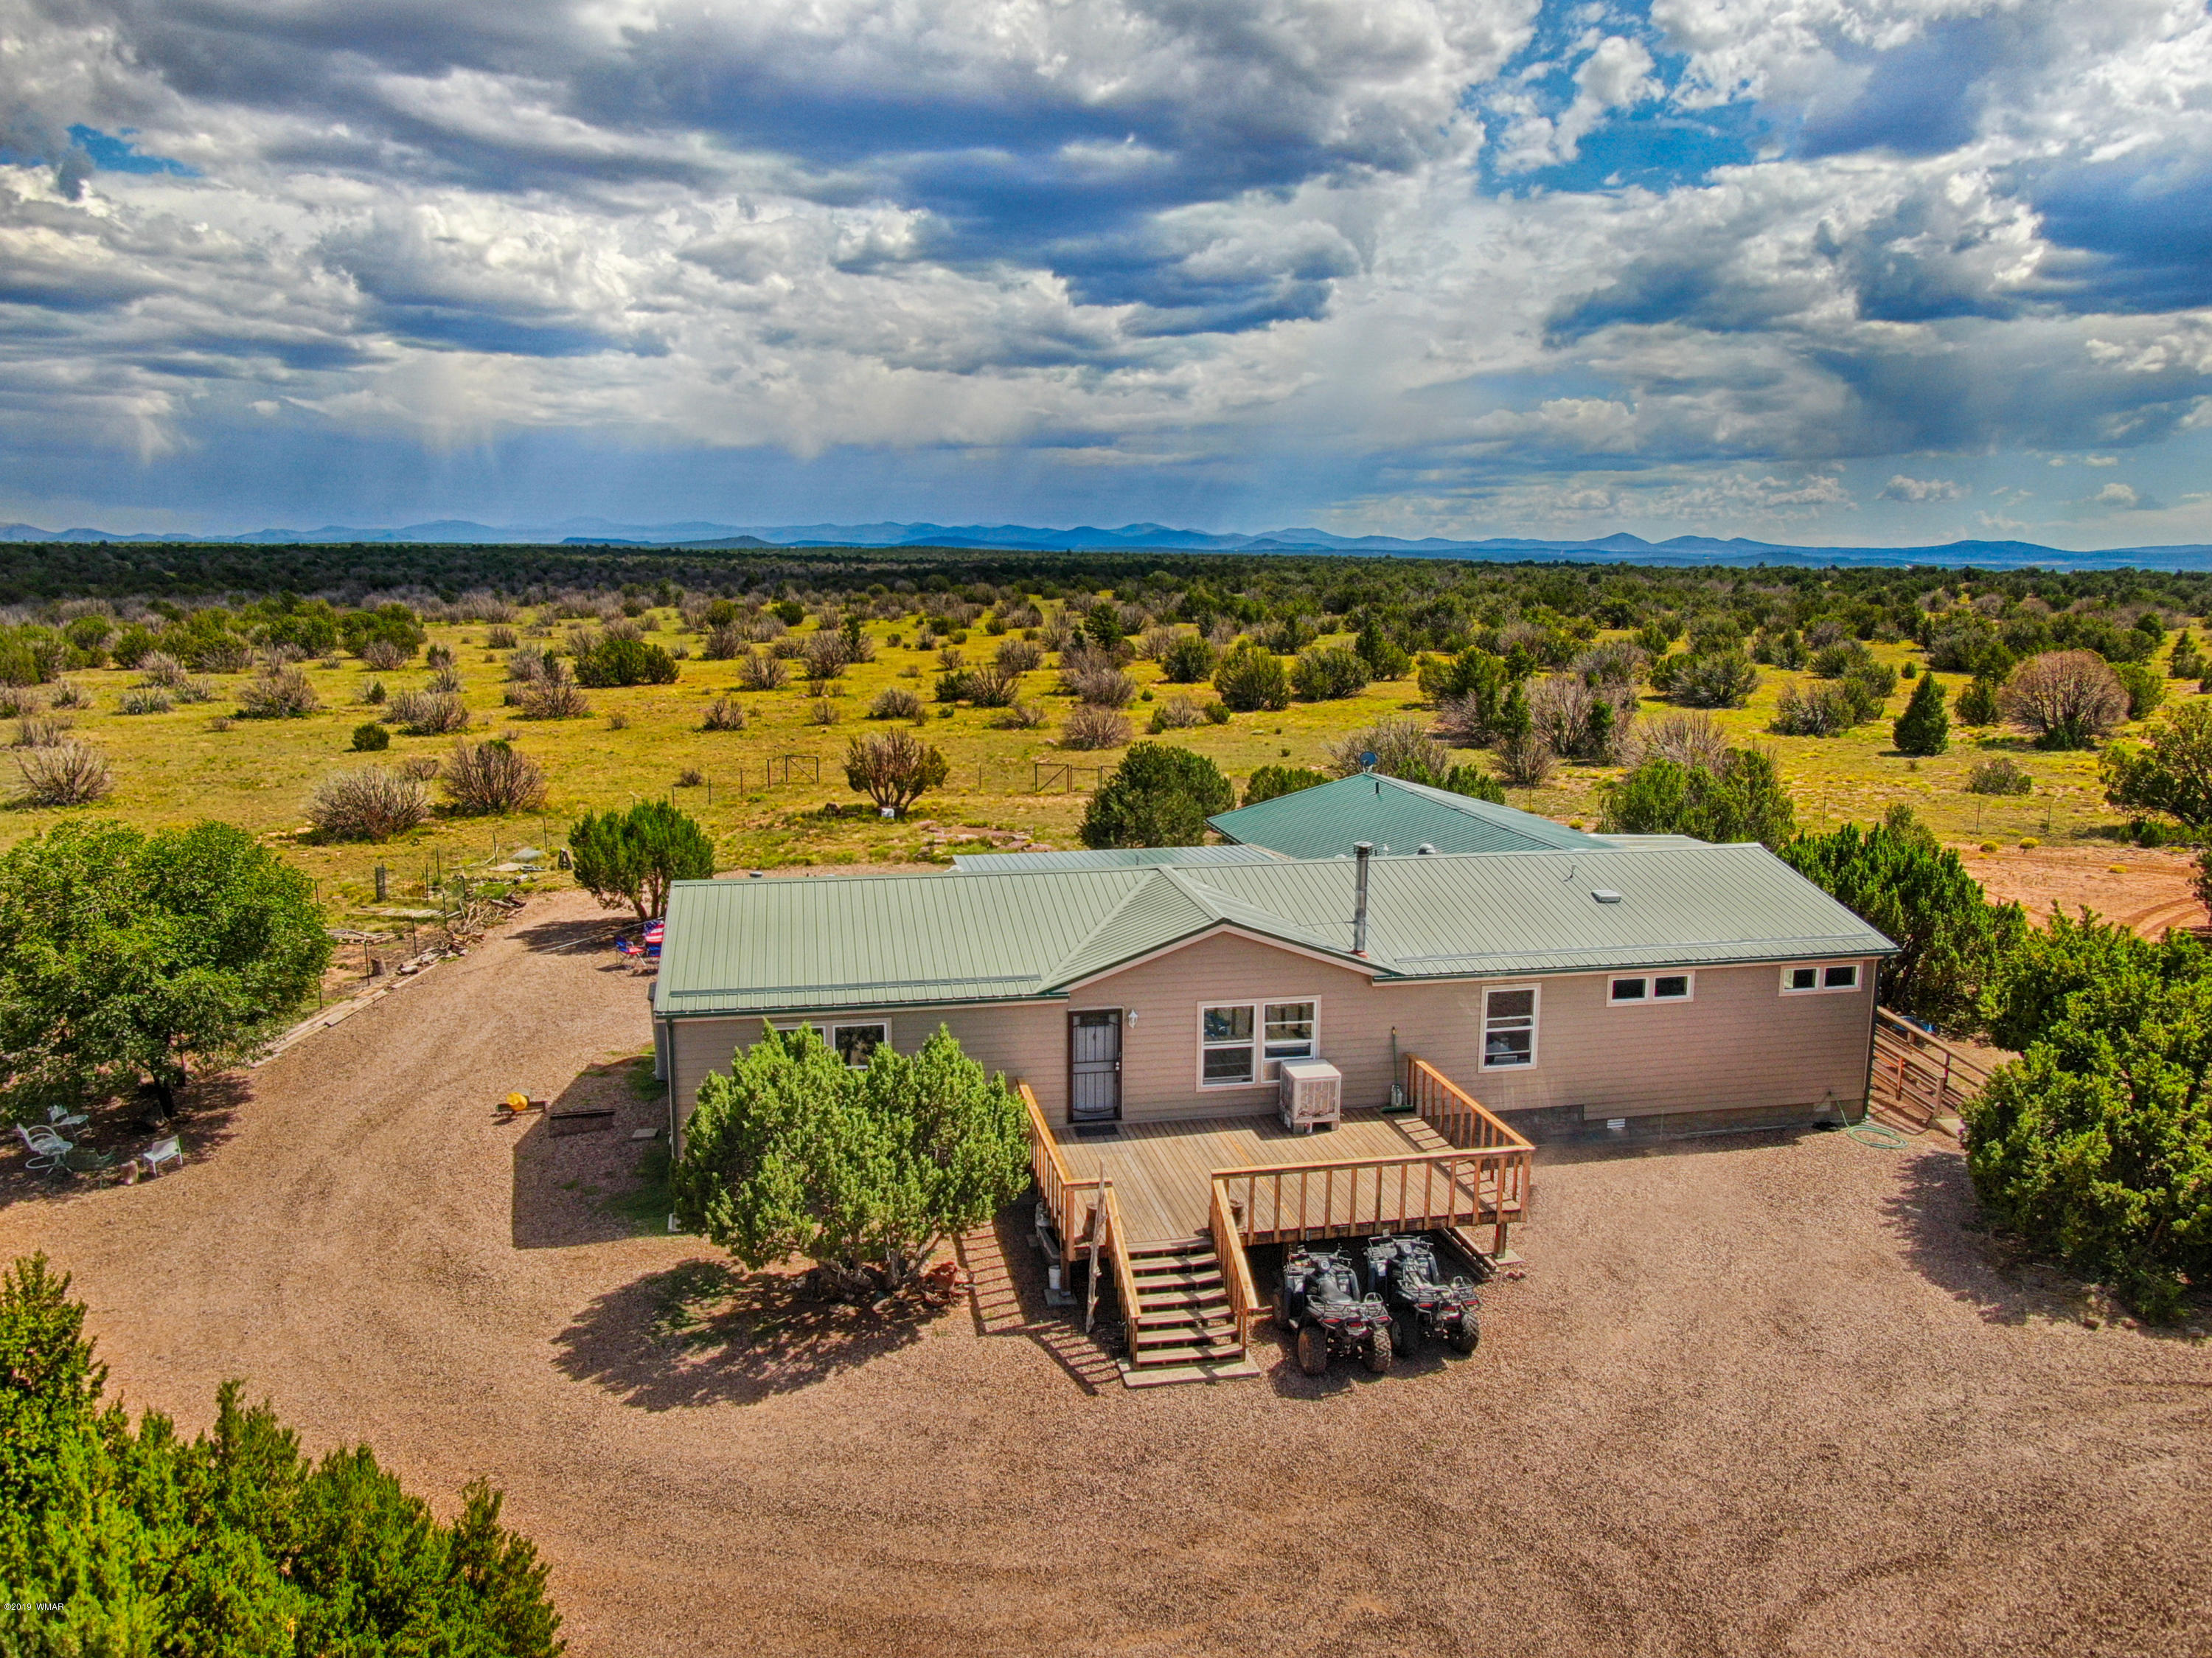 26 County Rd 8310, Concho, Arizona 85924, 5 Bedrooms Bedrooms, ,3 BathroomsBathrooms,Residential,For Sale,County Rd 8310,226708